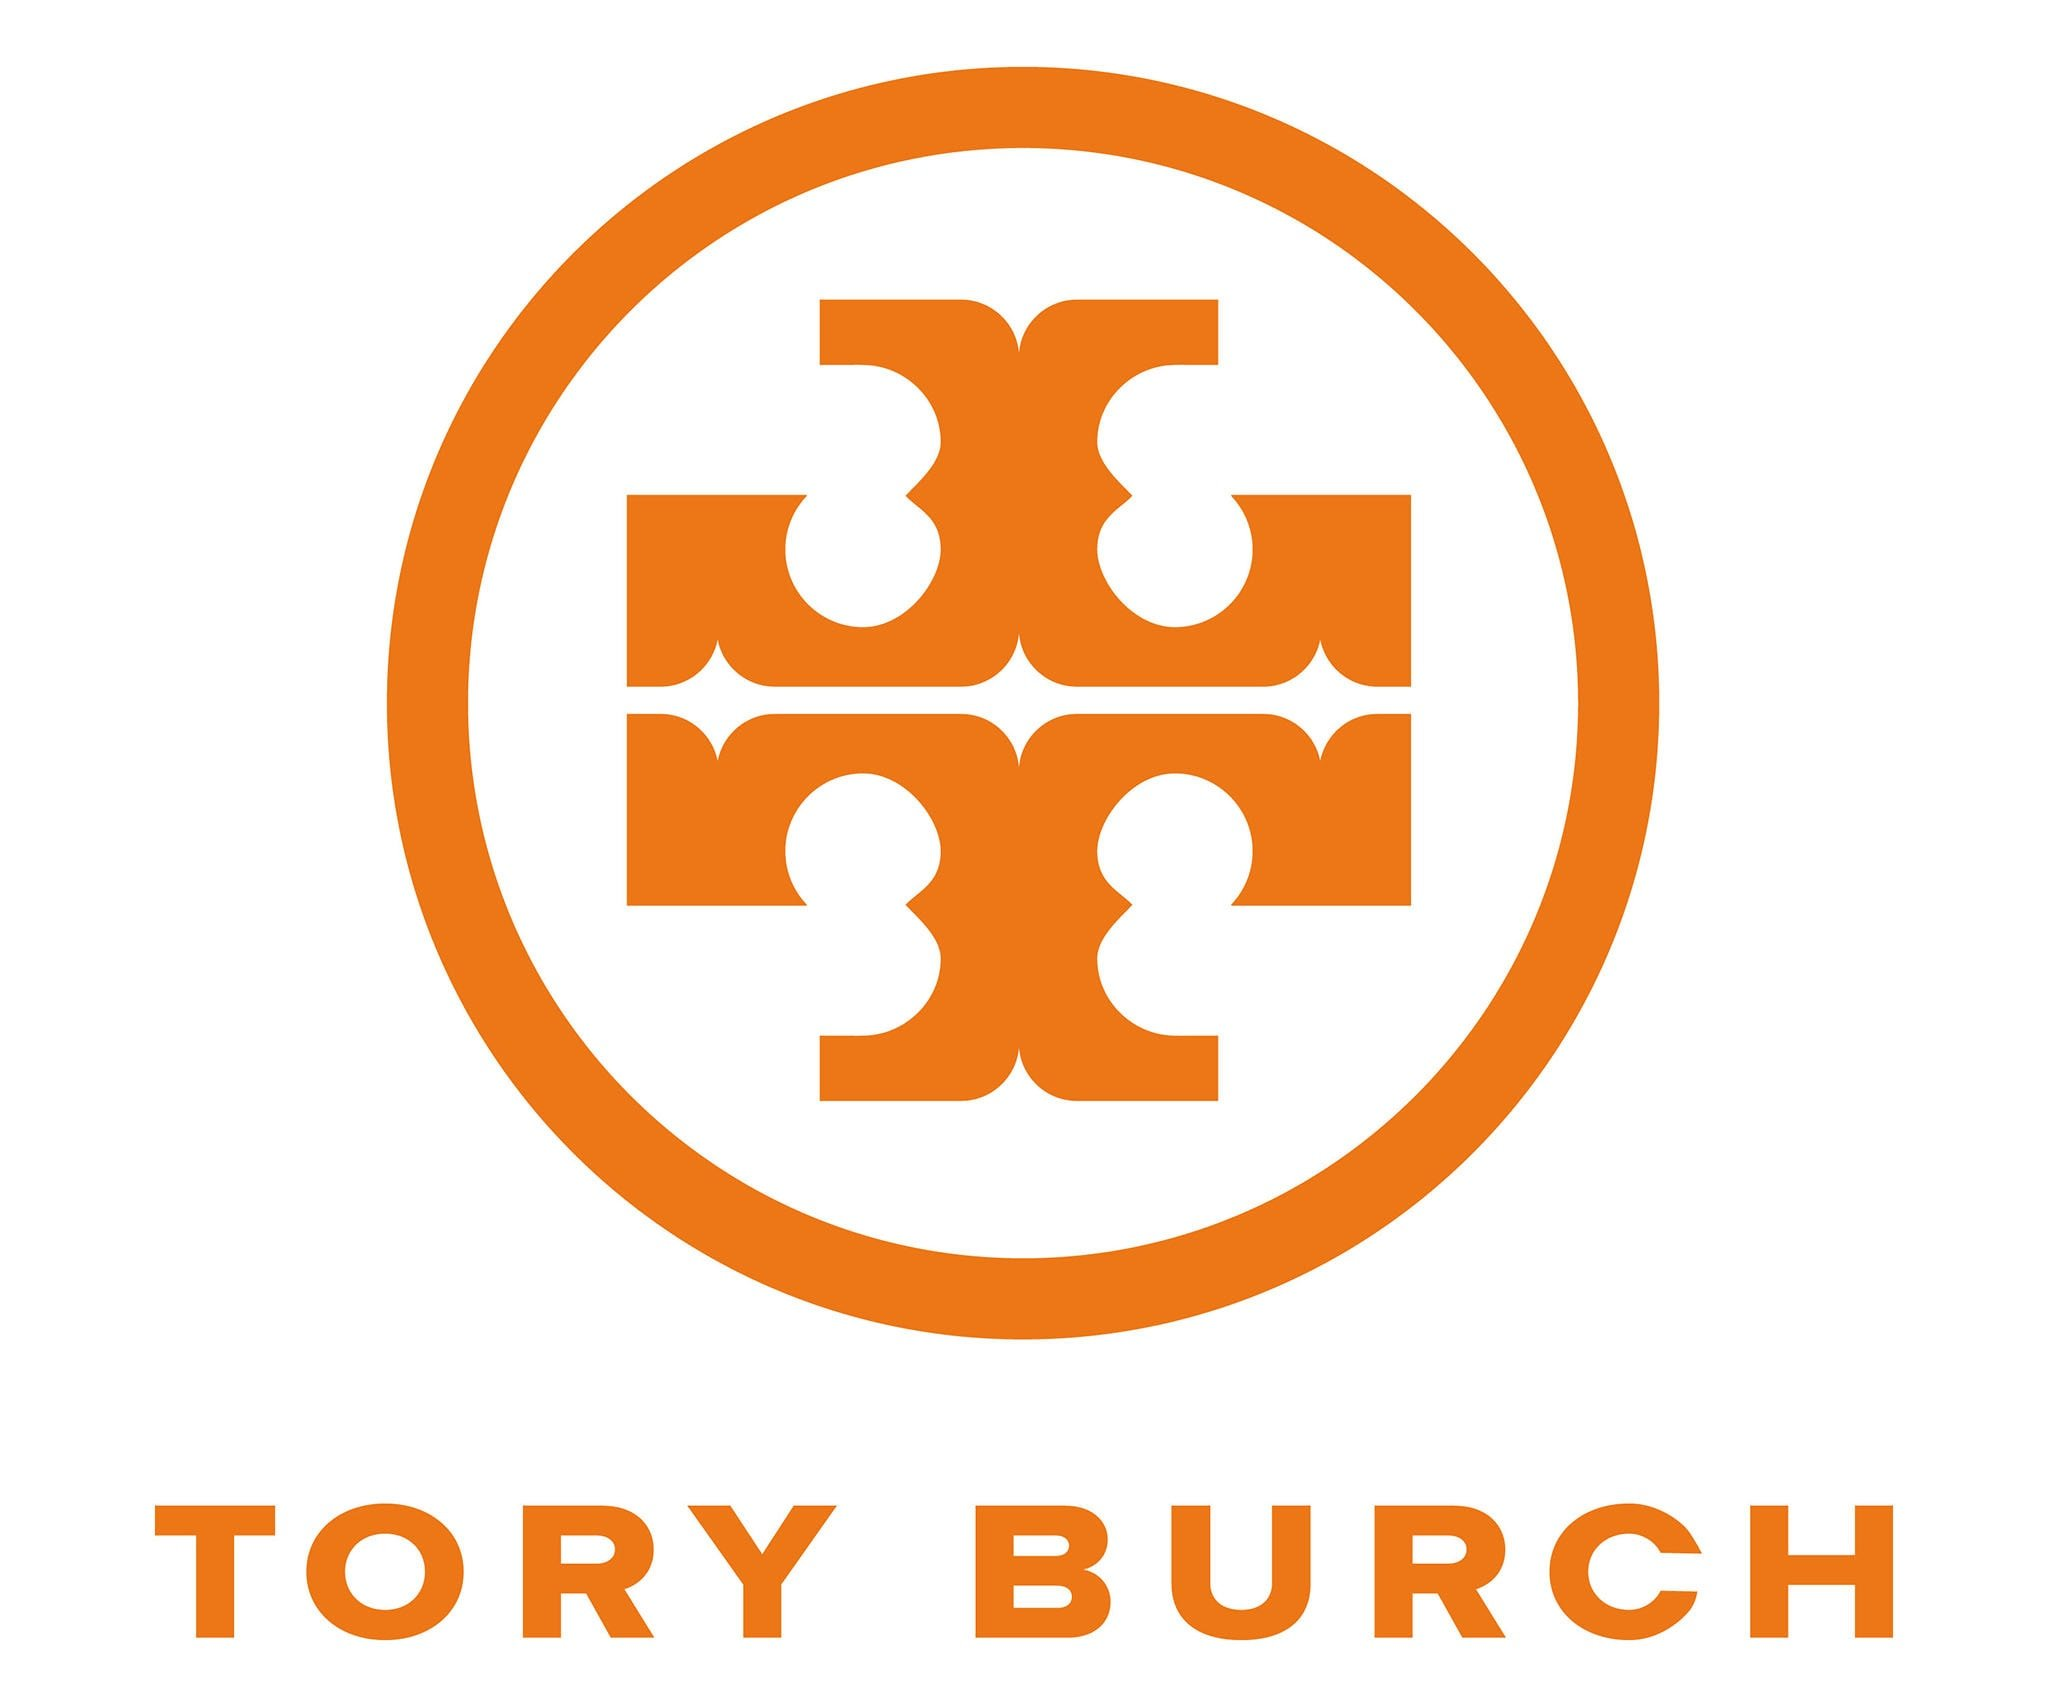 Tory Burch commissioned a design firm to create her logo, inspired by the works of Moroccan and interior designer David Hicks